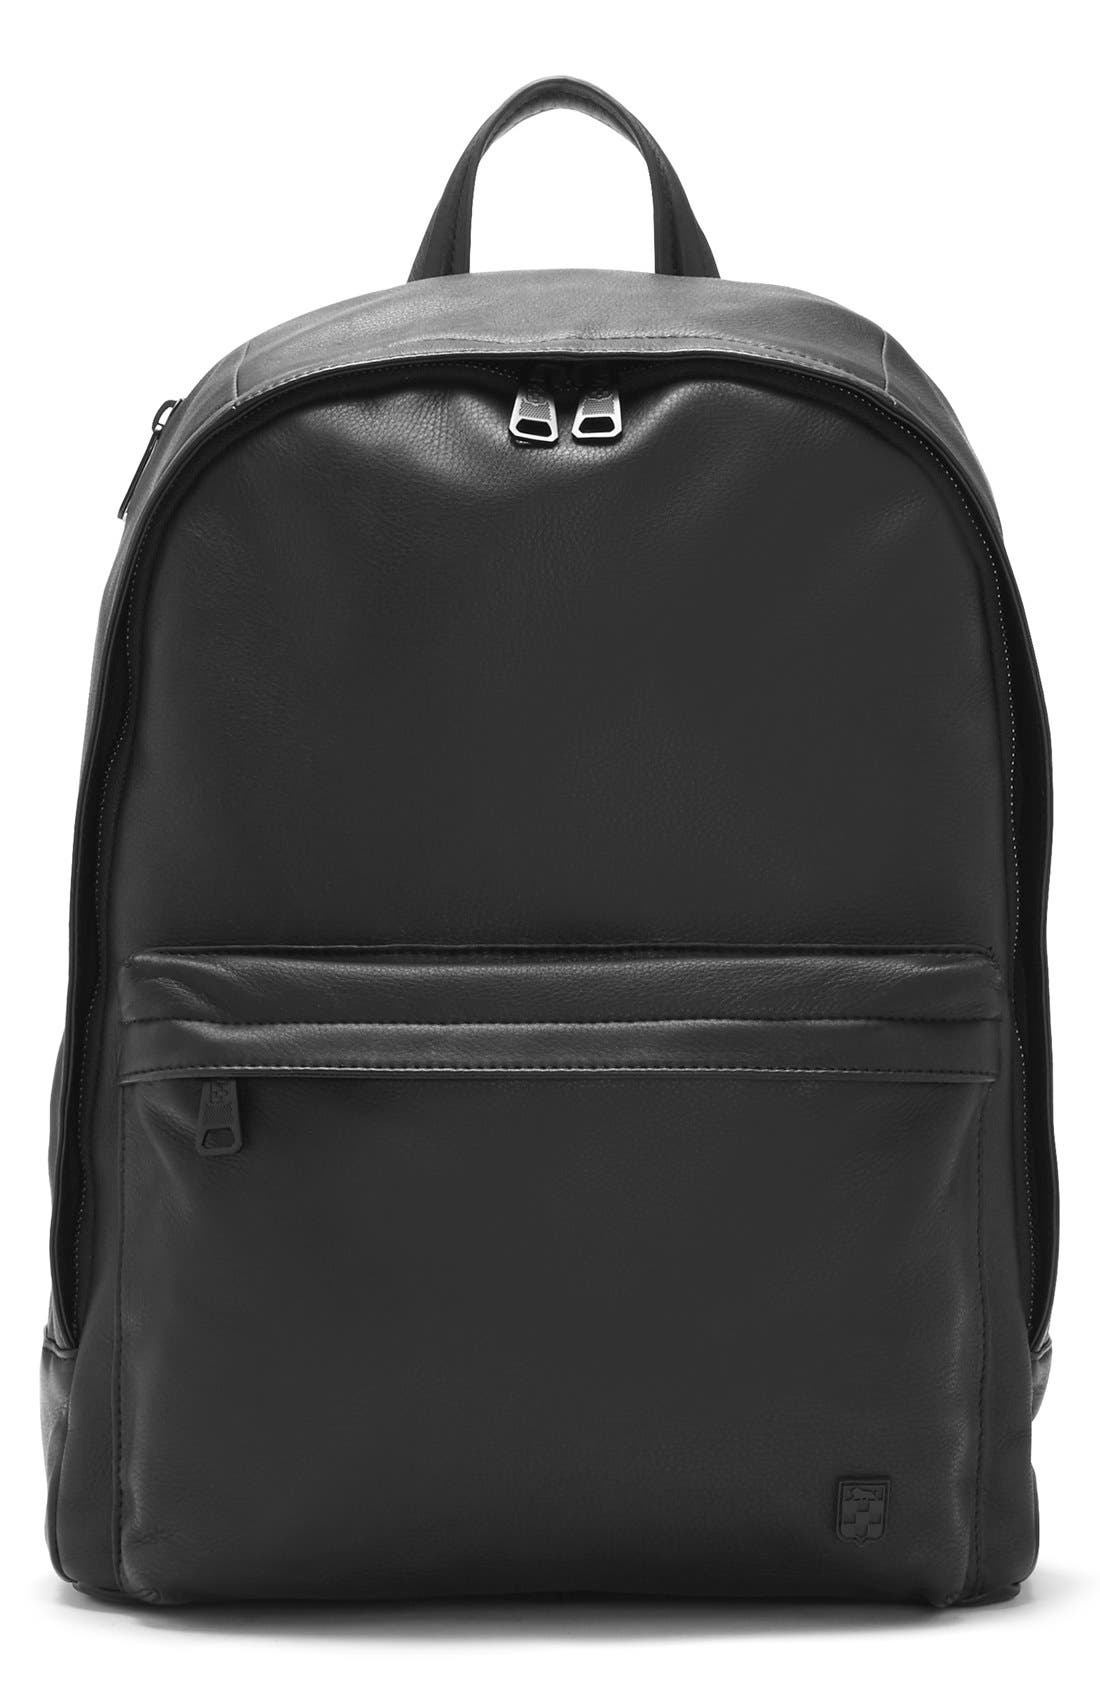 'Tolve' Leather Backpack,                             Main thumbnail 1, color,                             001